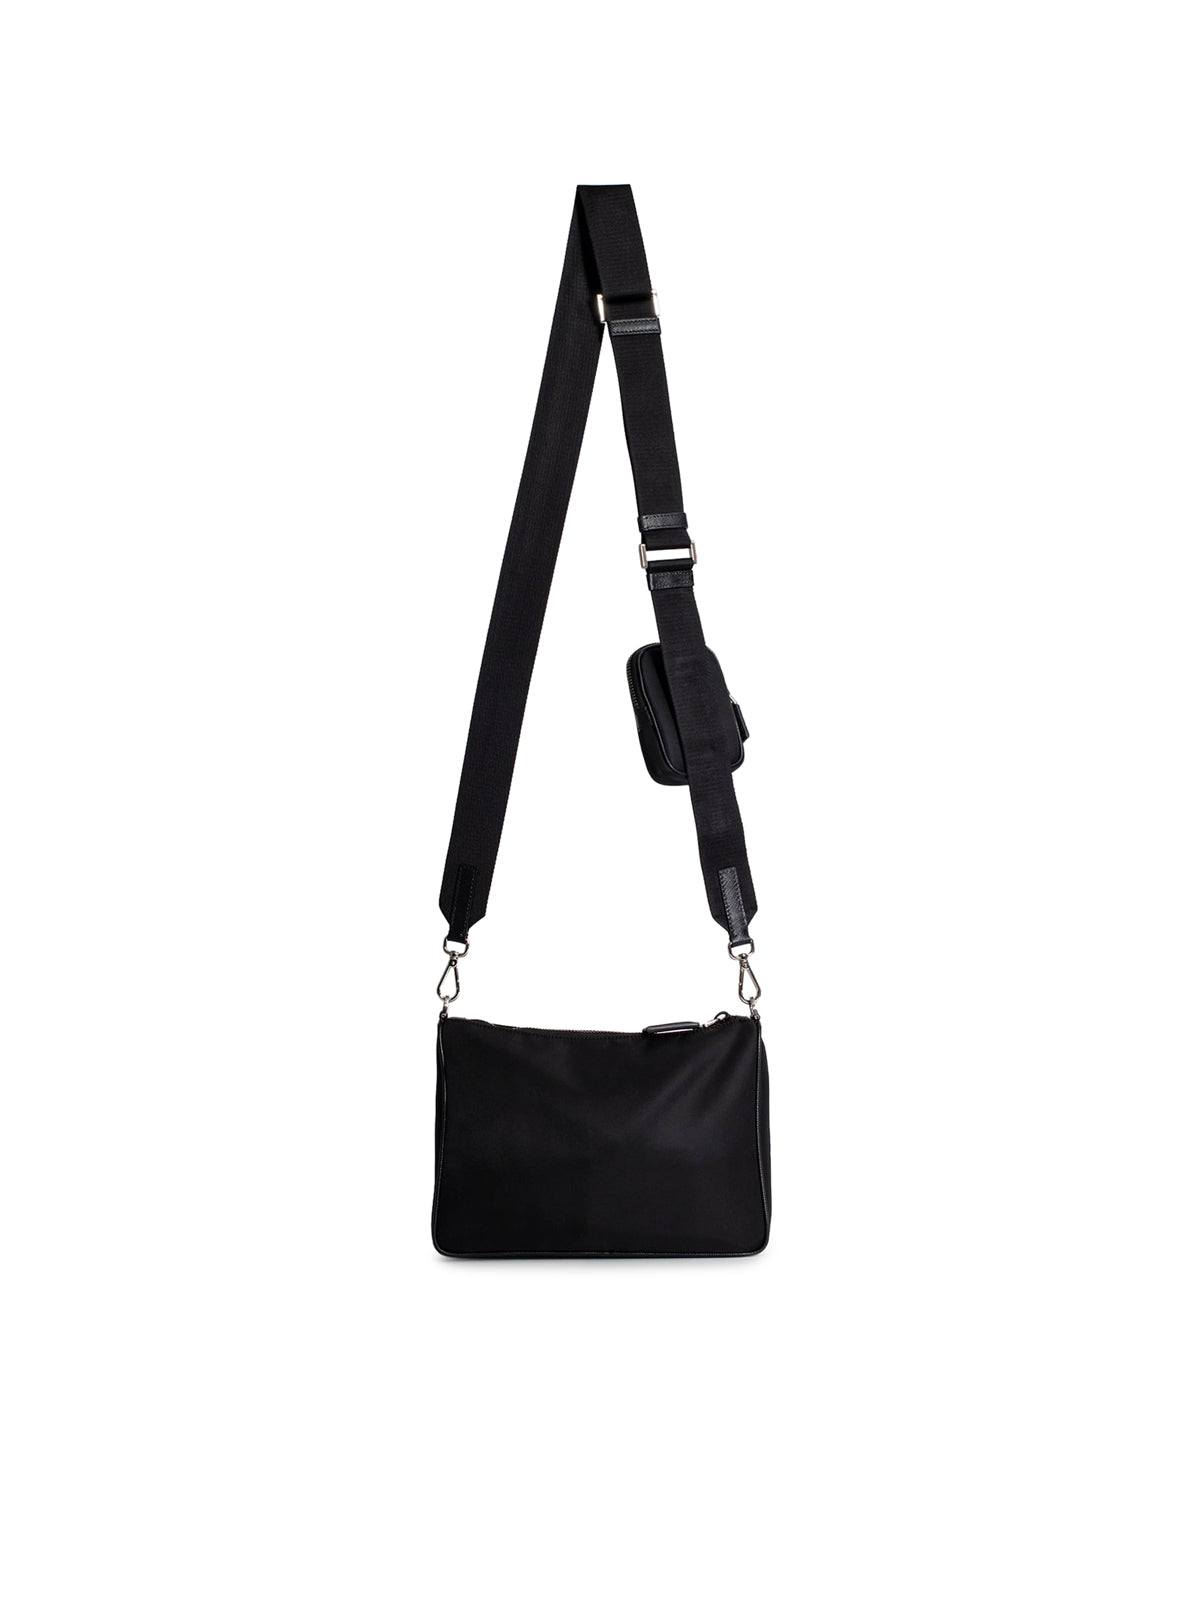 Black nylon and saffiano leather bag with strap